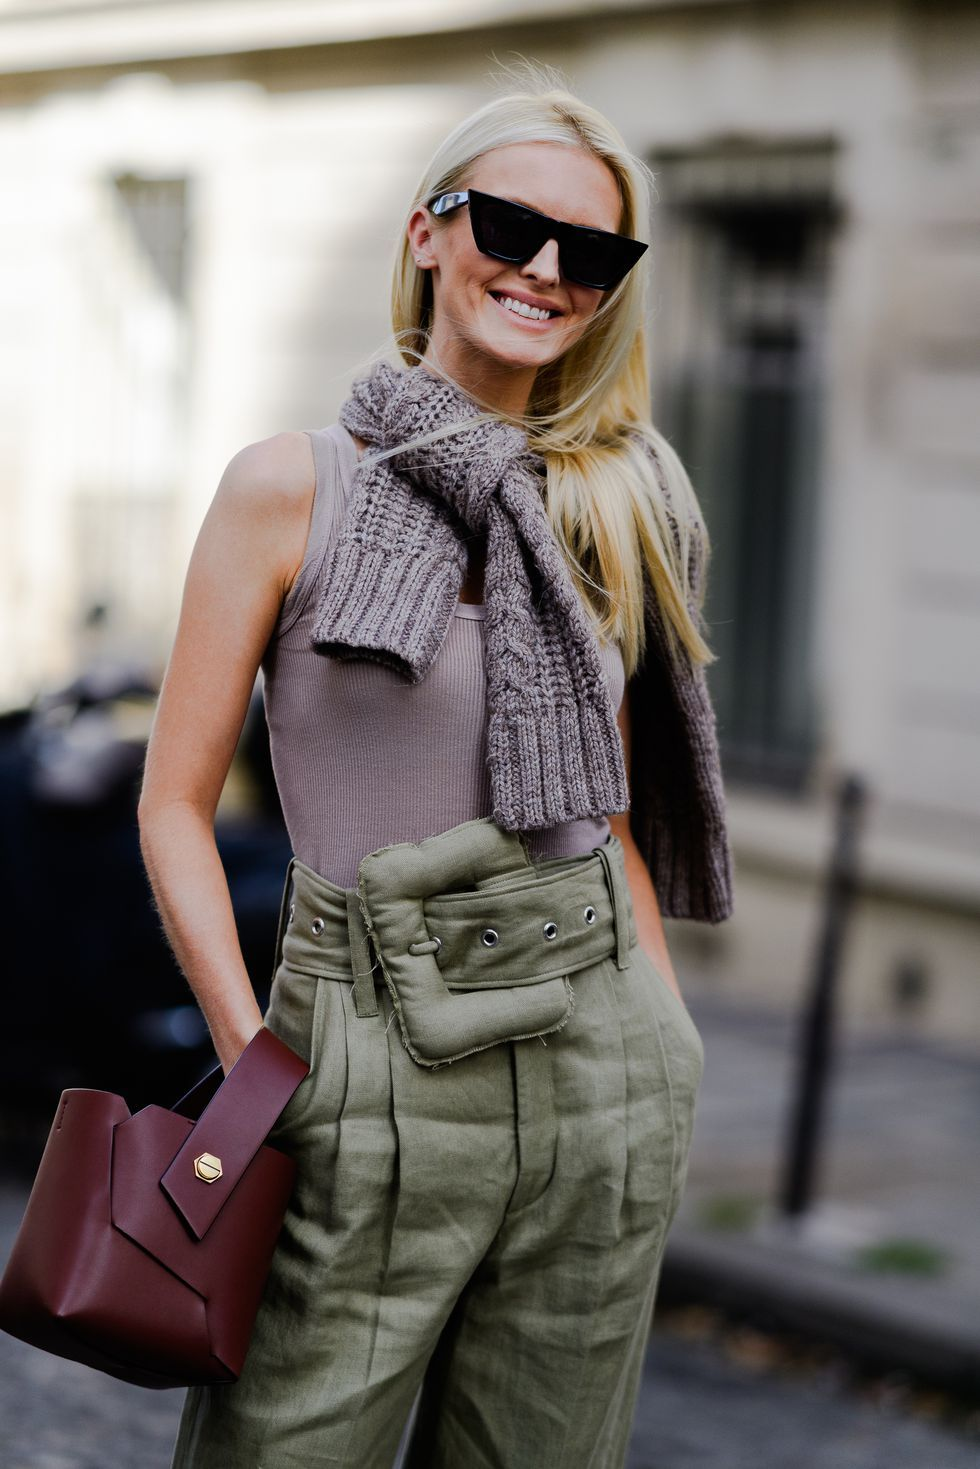 1b733c2fb4a9 image Street Style 2018, Autumn Street Style, Street Styles, Winter Fashion  Outfits,